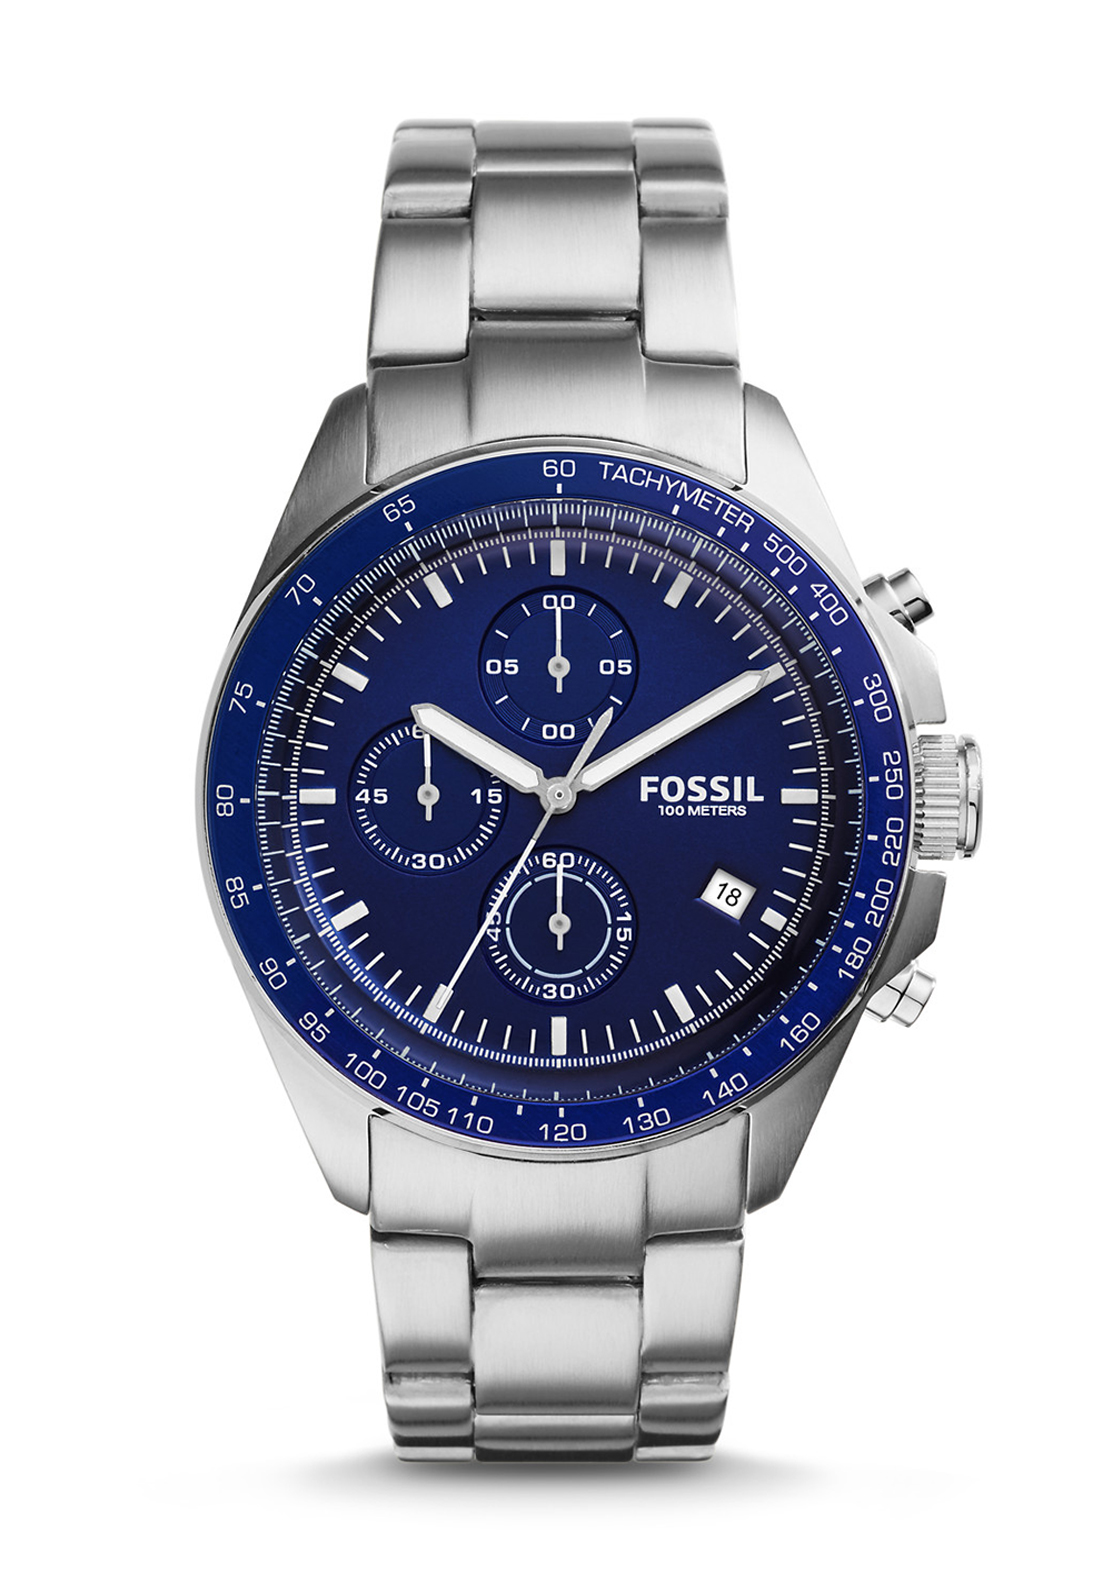 Fossil Mens Sport 54 Chronograph Watch, Stainless Steel